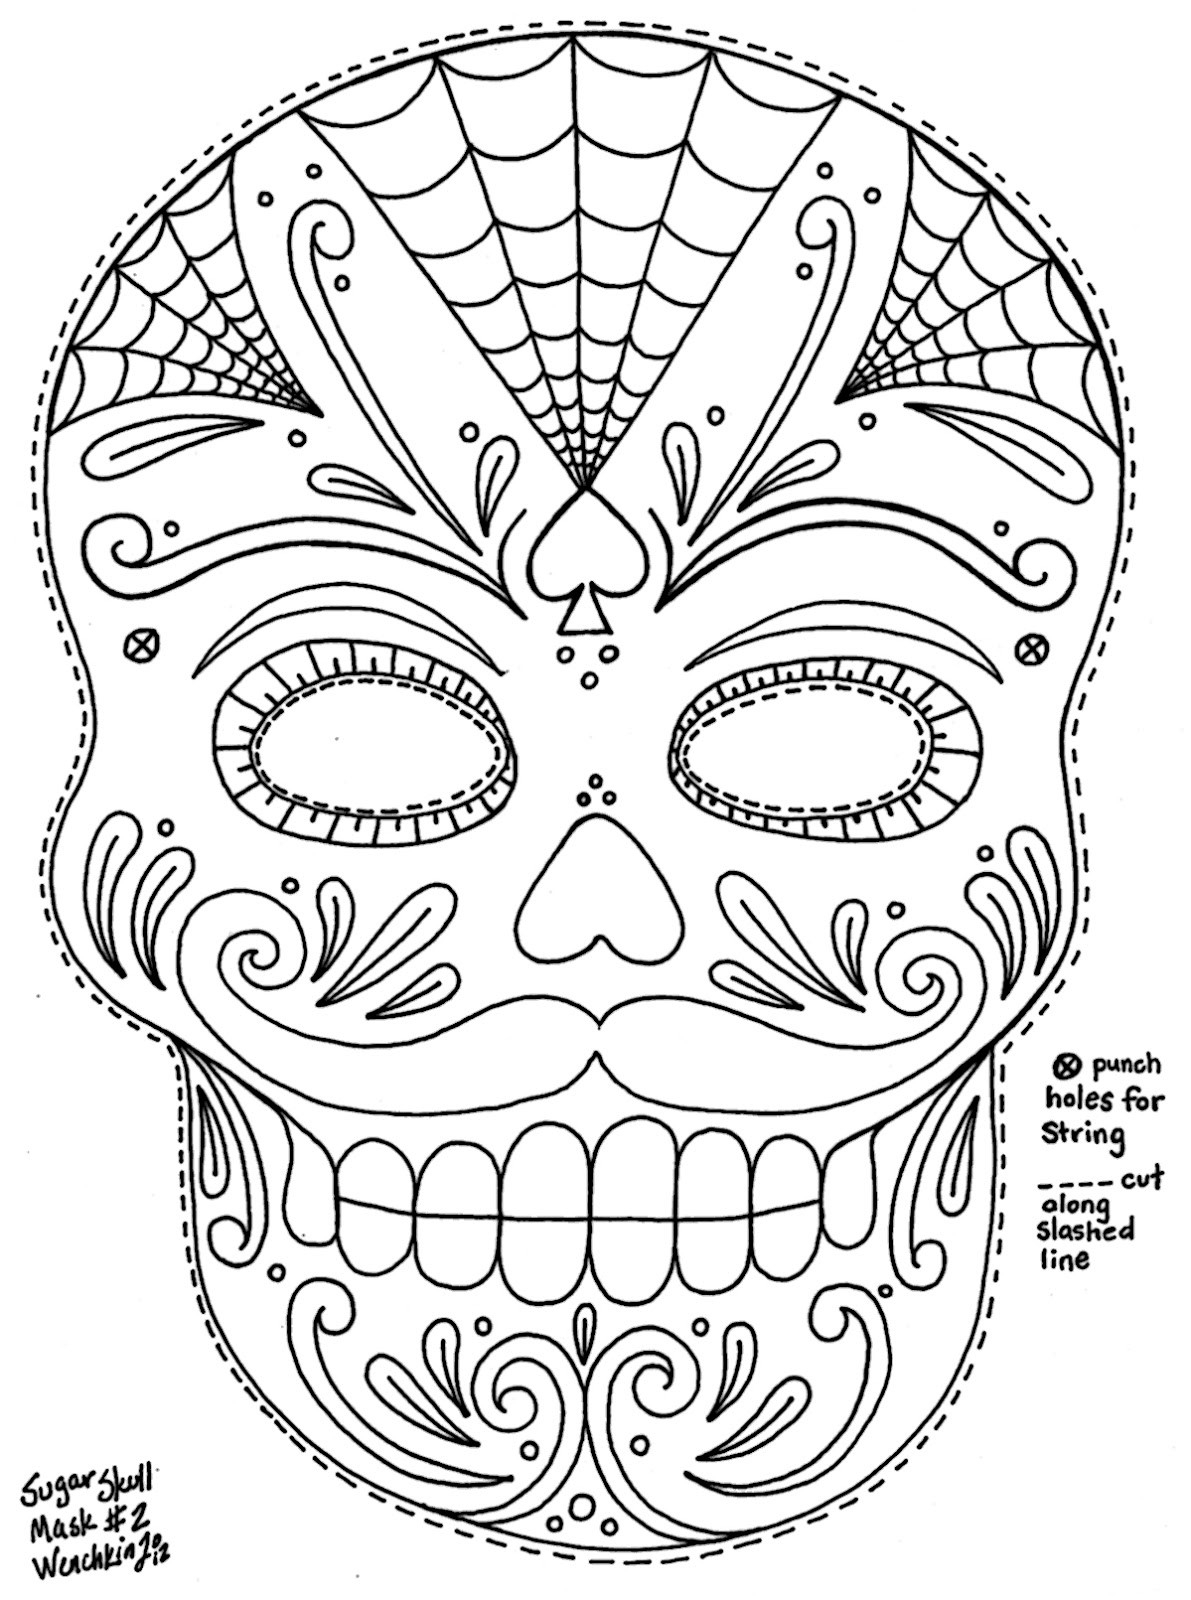 Free Printable Day Of the Dead Coloring Pages  Collection 2j - Free For Children